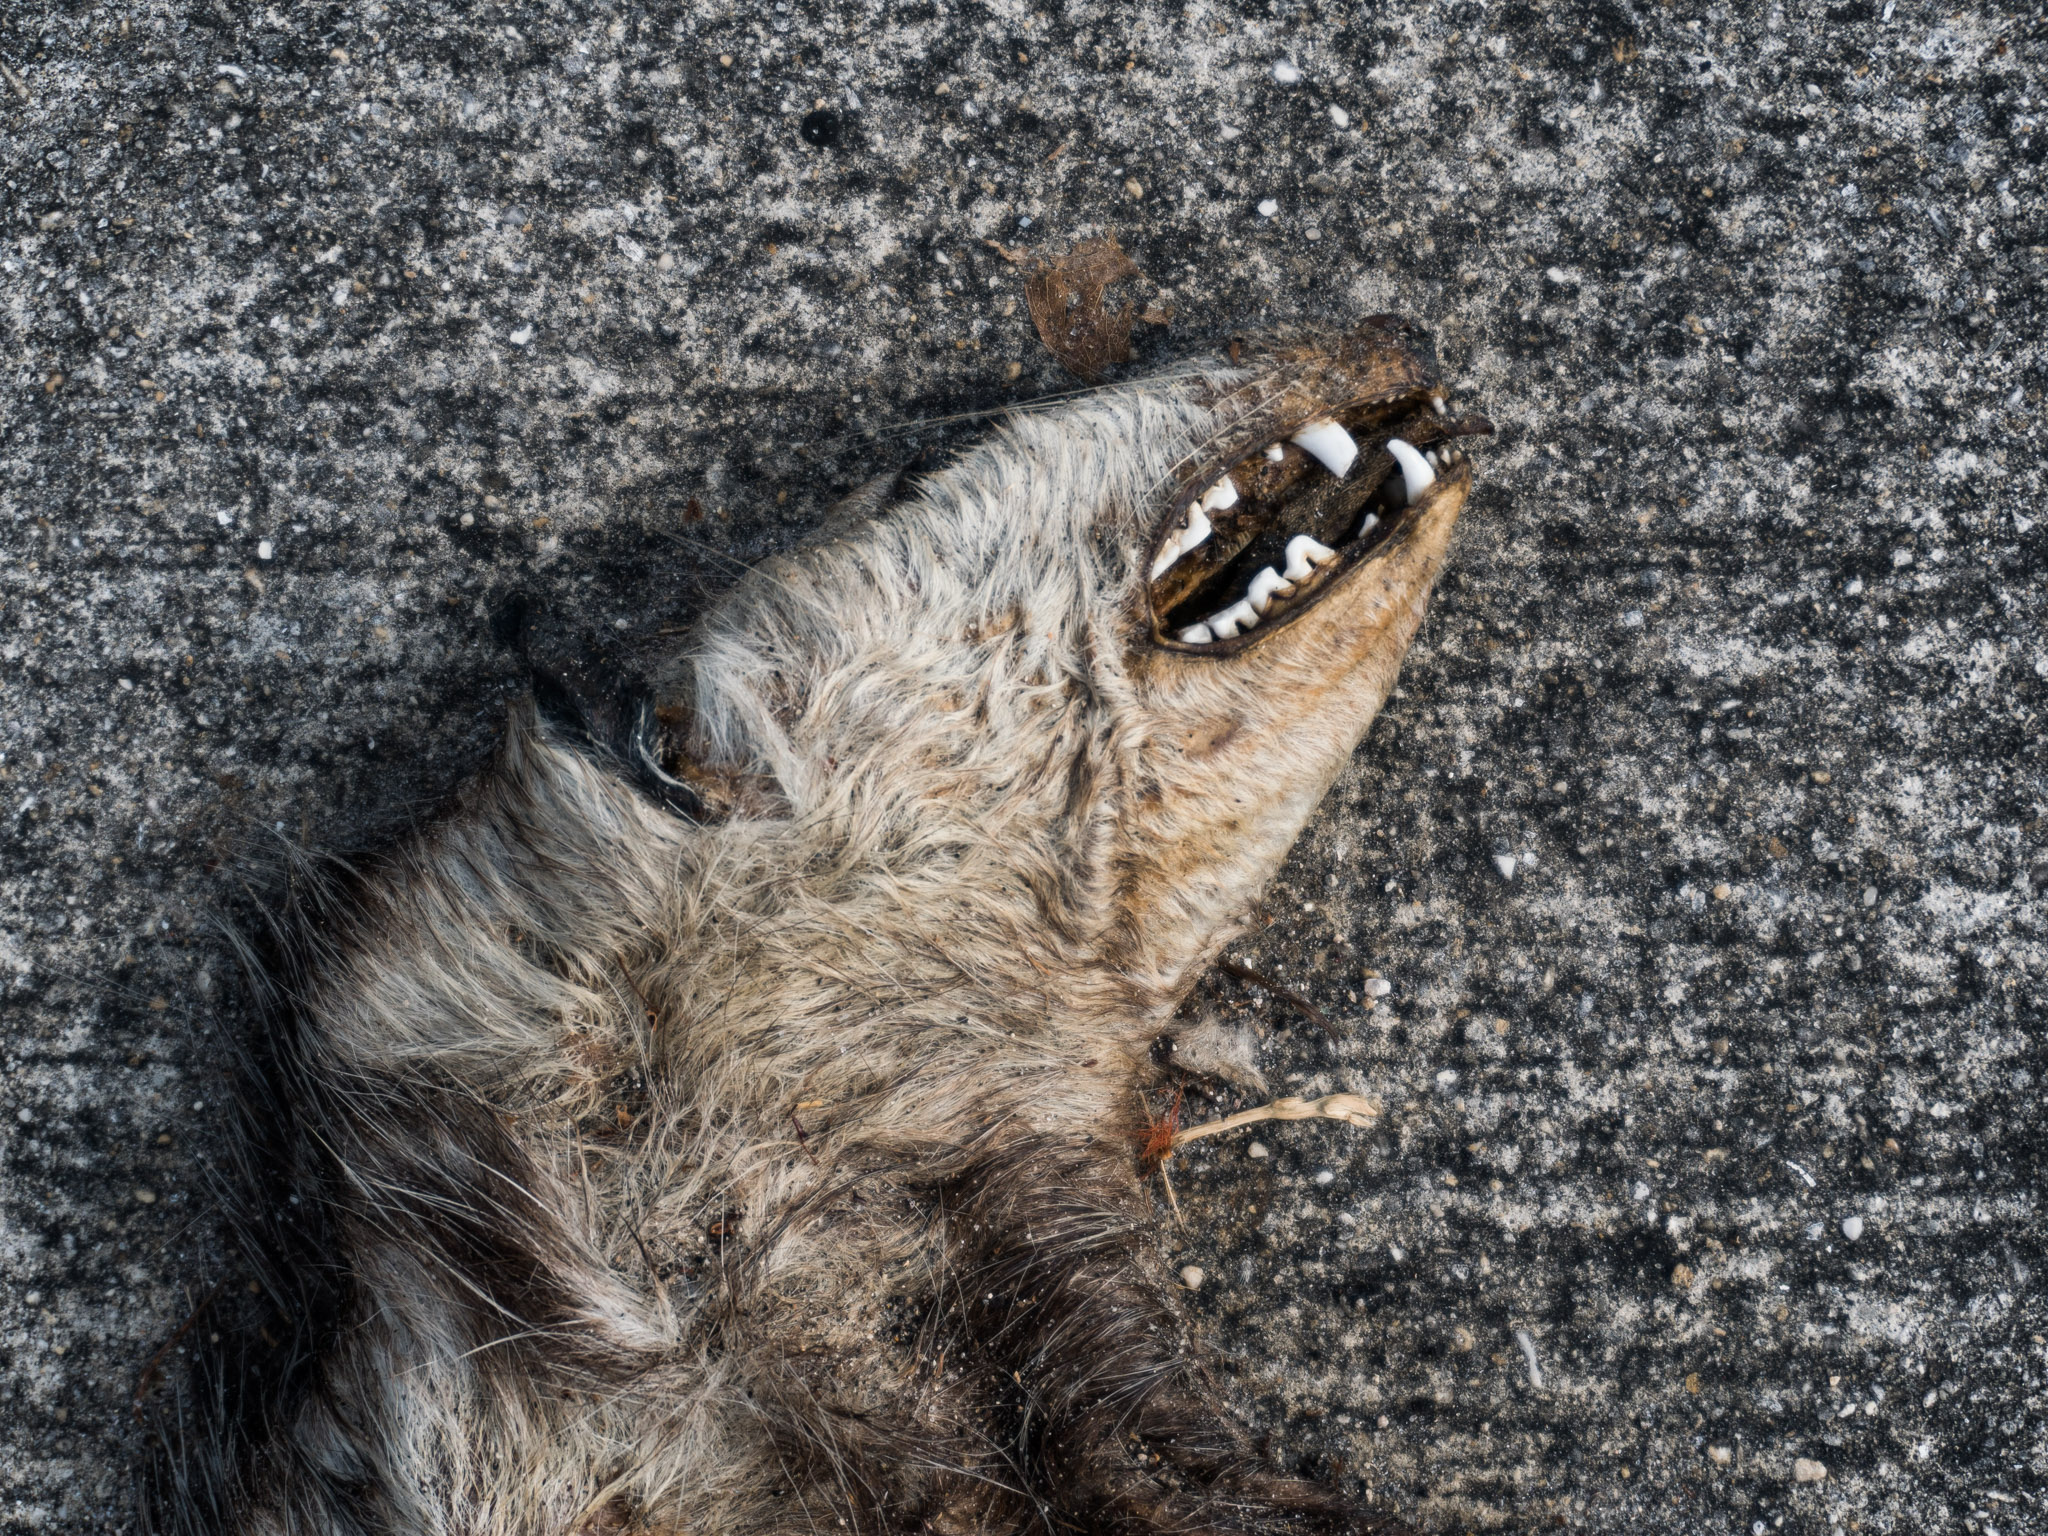 Hit and run opossum near Tamiami Airport. (Miami, FL)